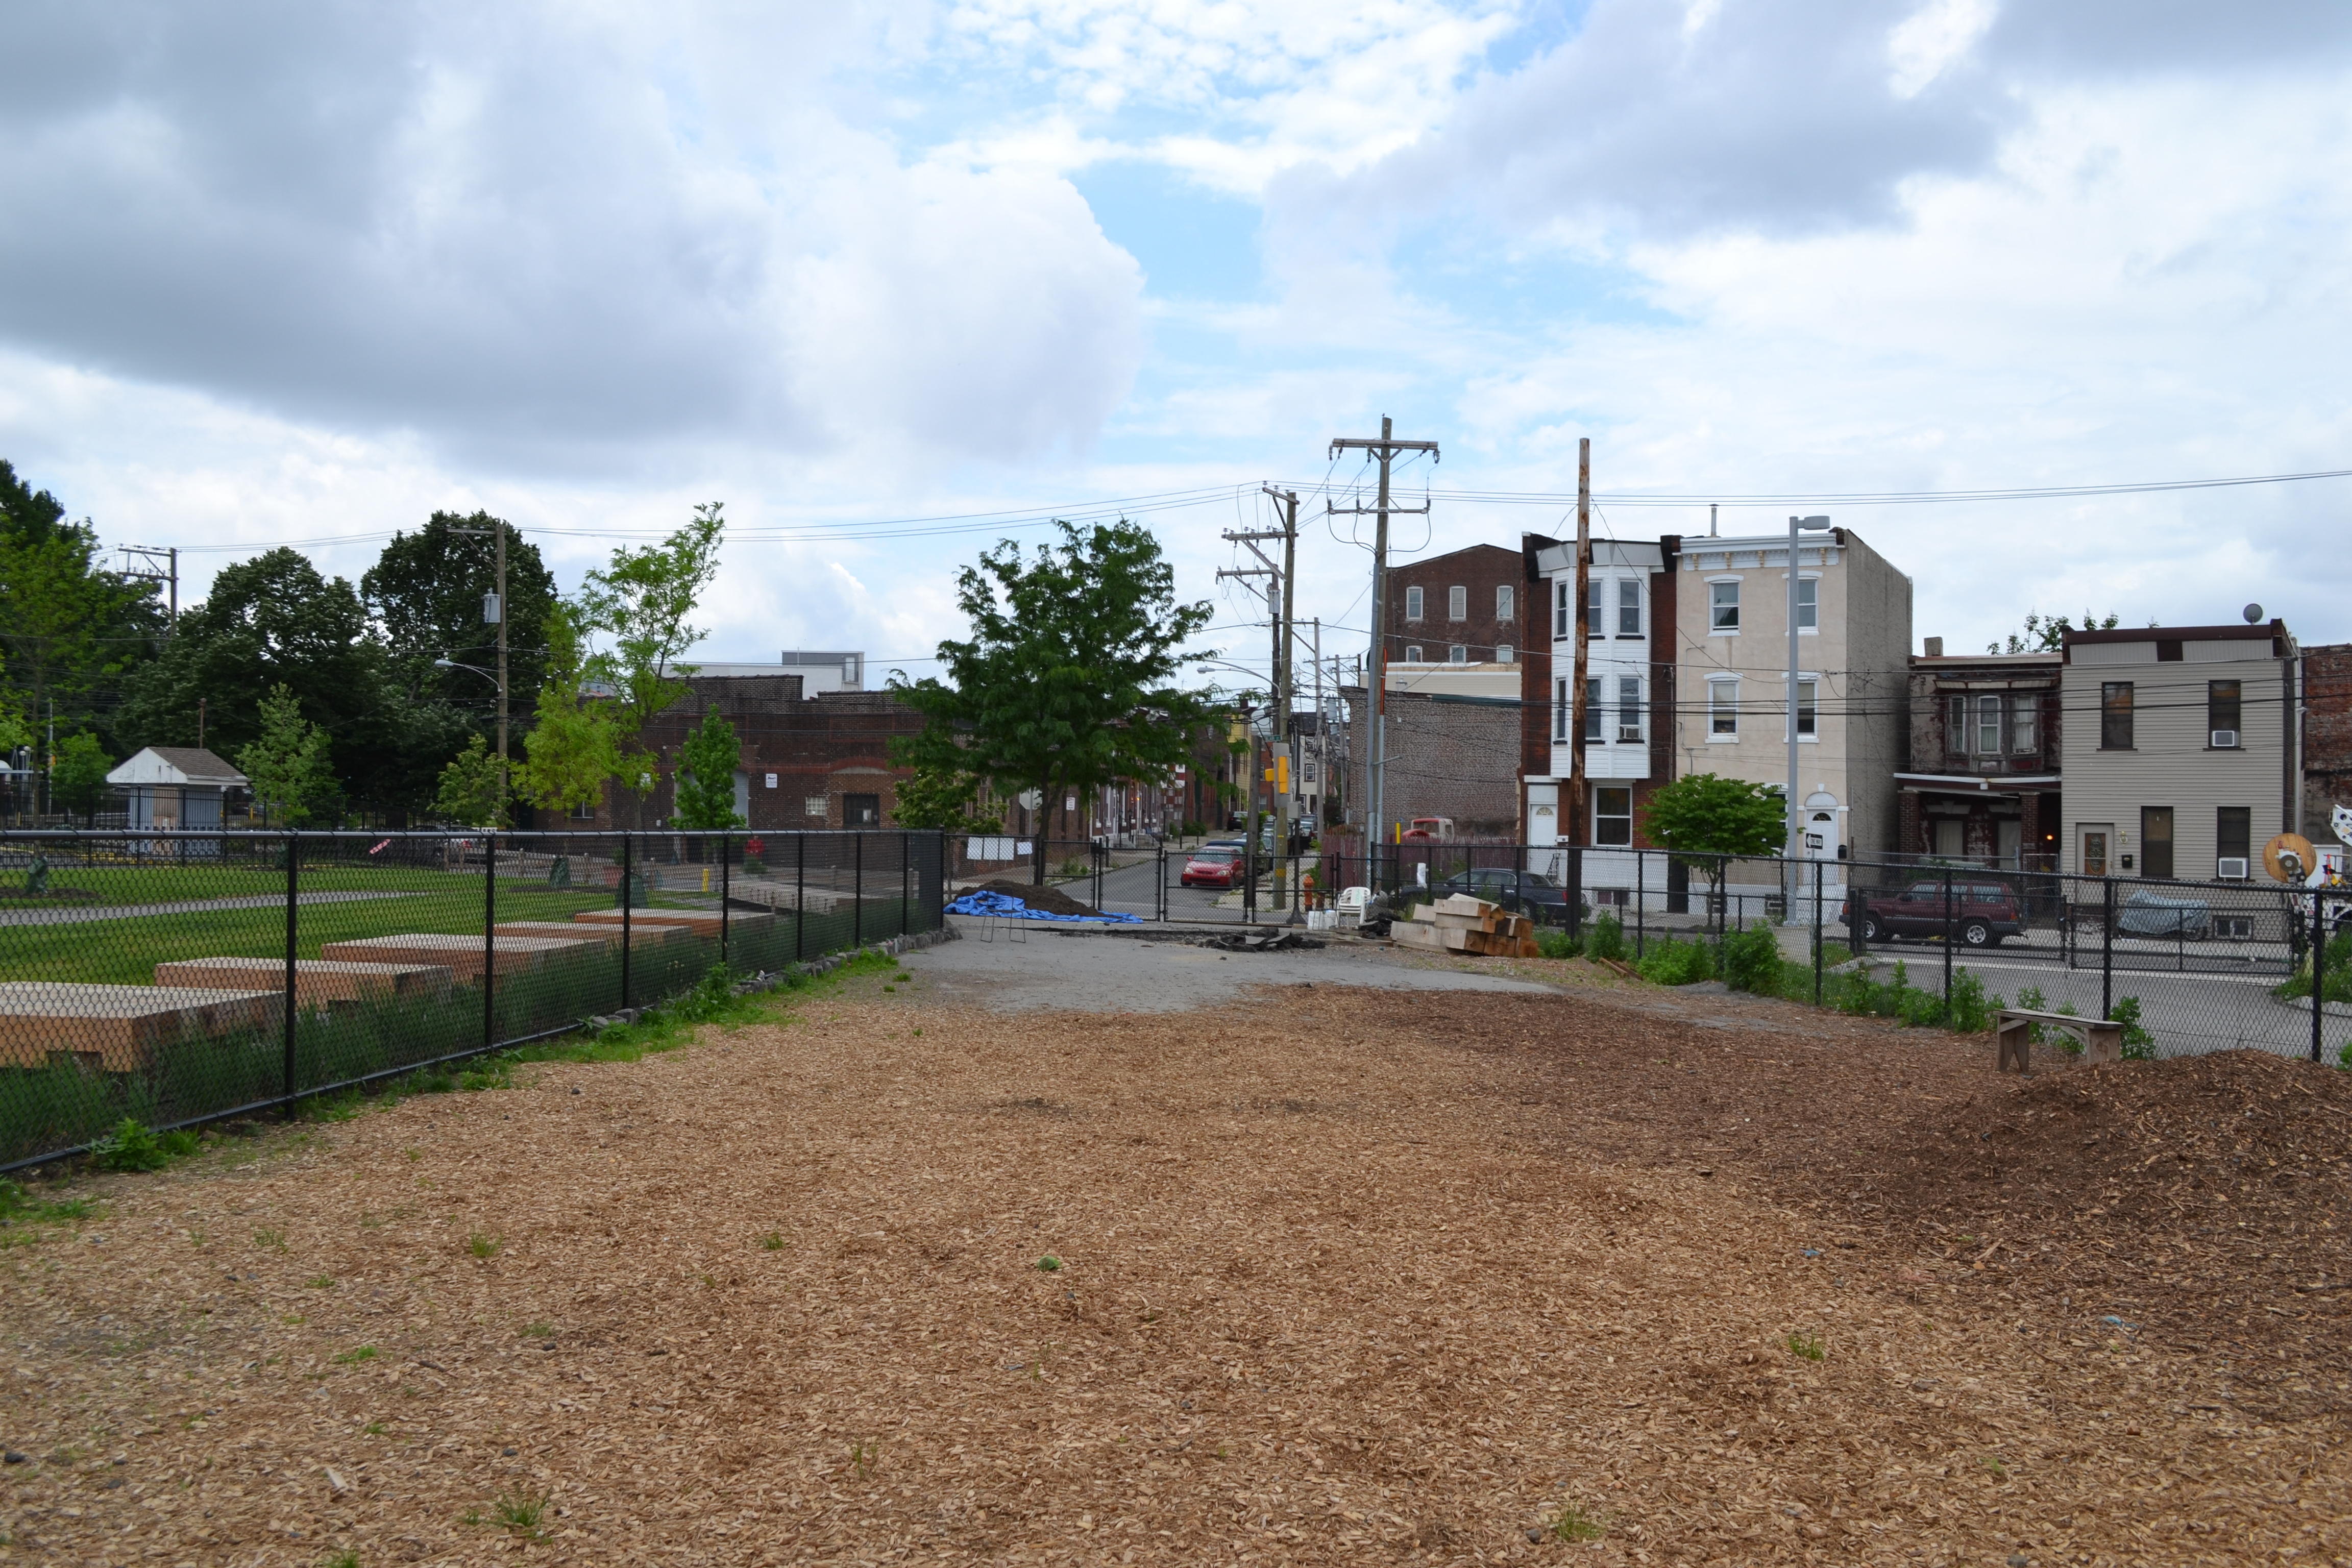 This June a dog park will open as part of the Big Green Block project